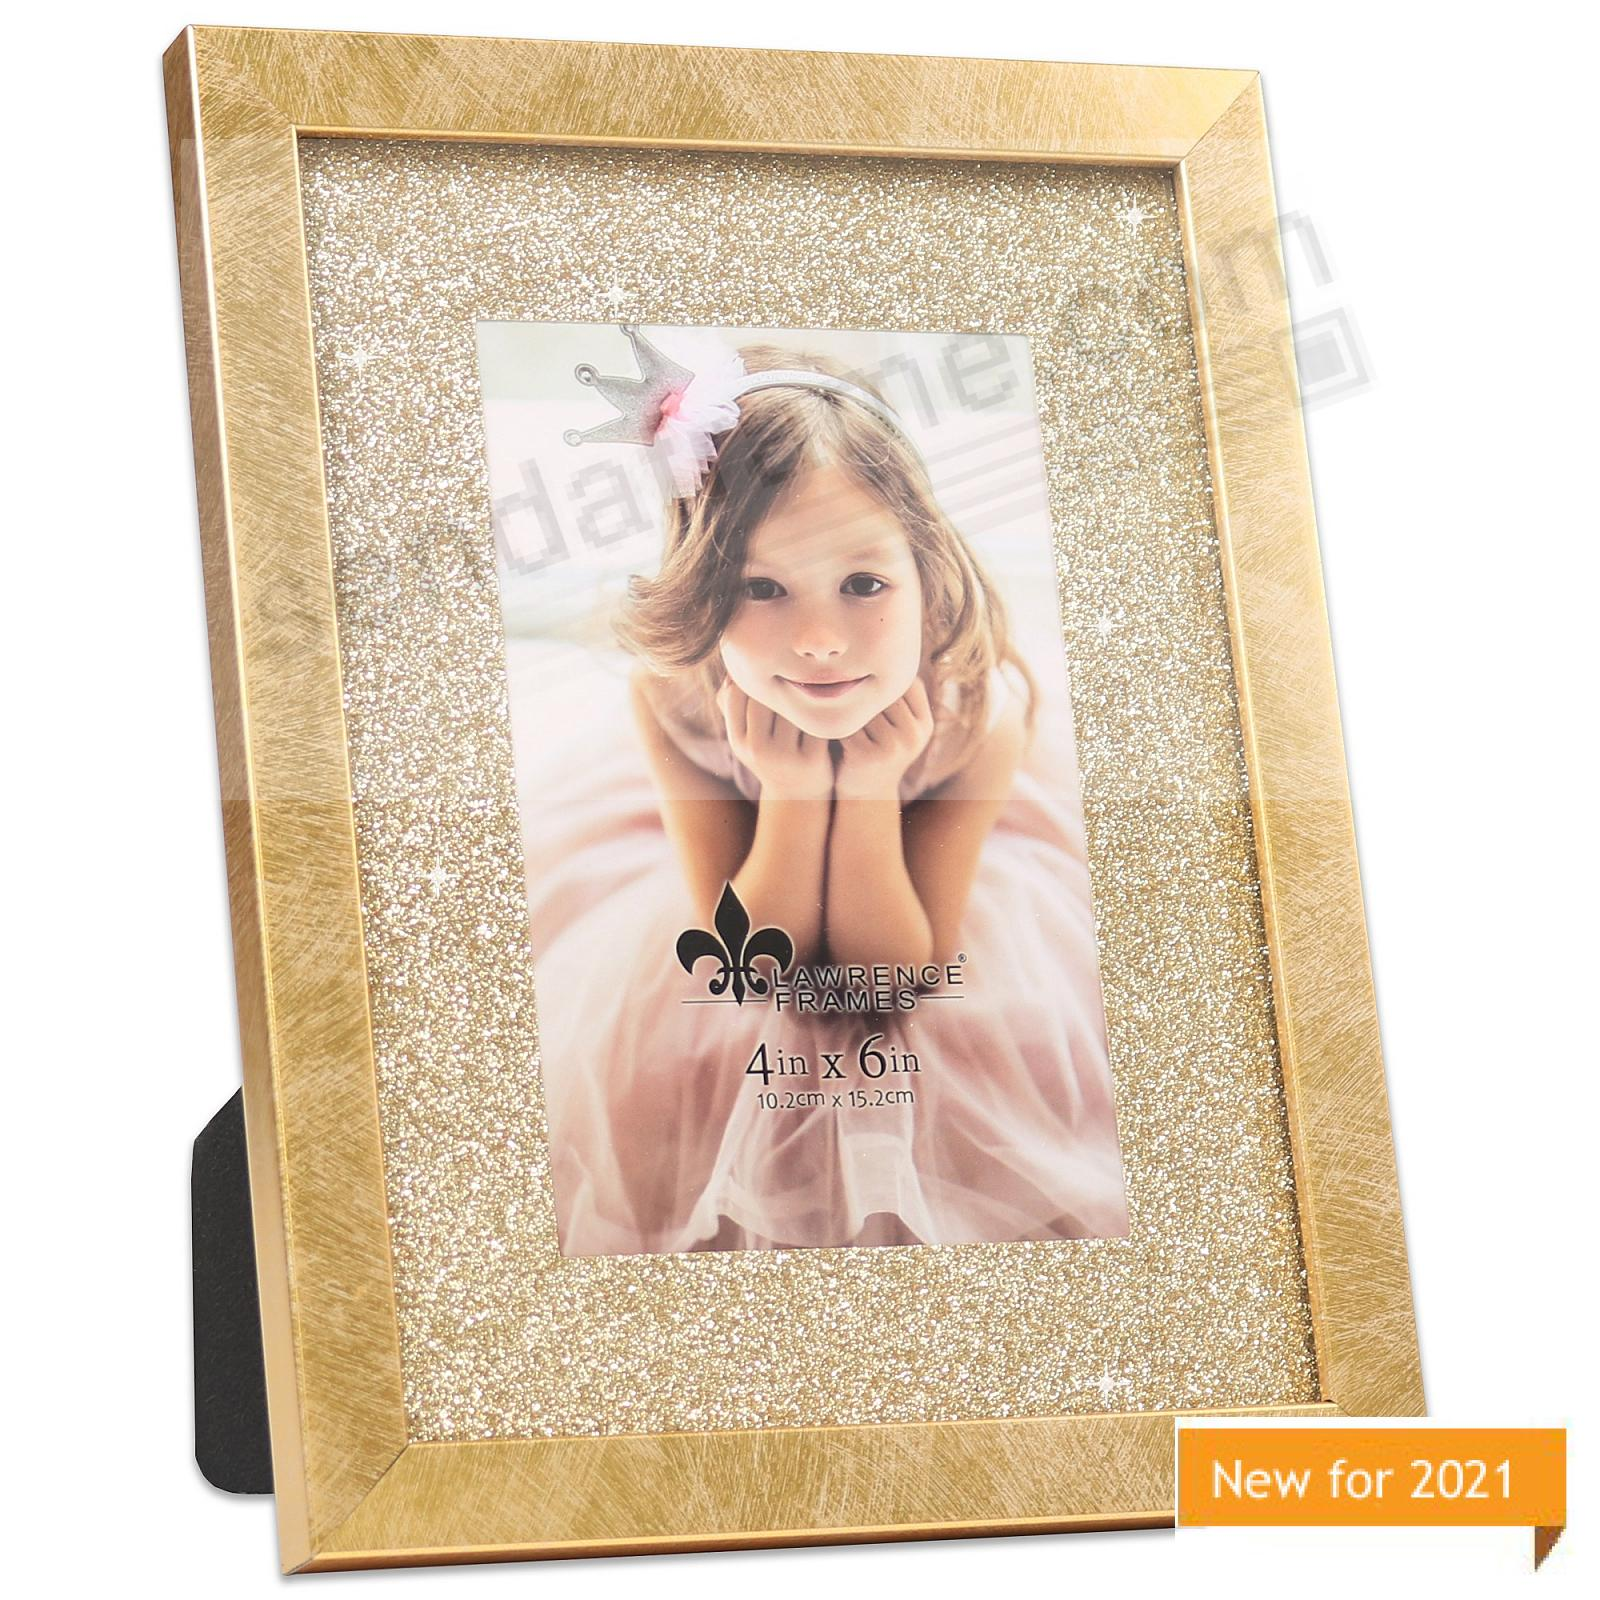 Satin-Gold matted 6x8/4x6 frame with Glitter Mat by Lawrence Frames®